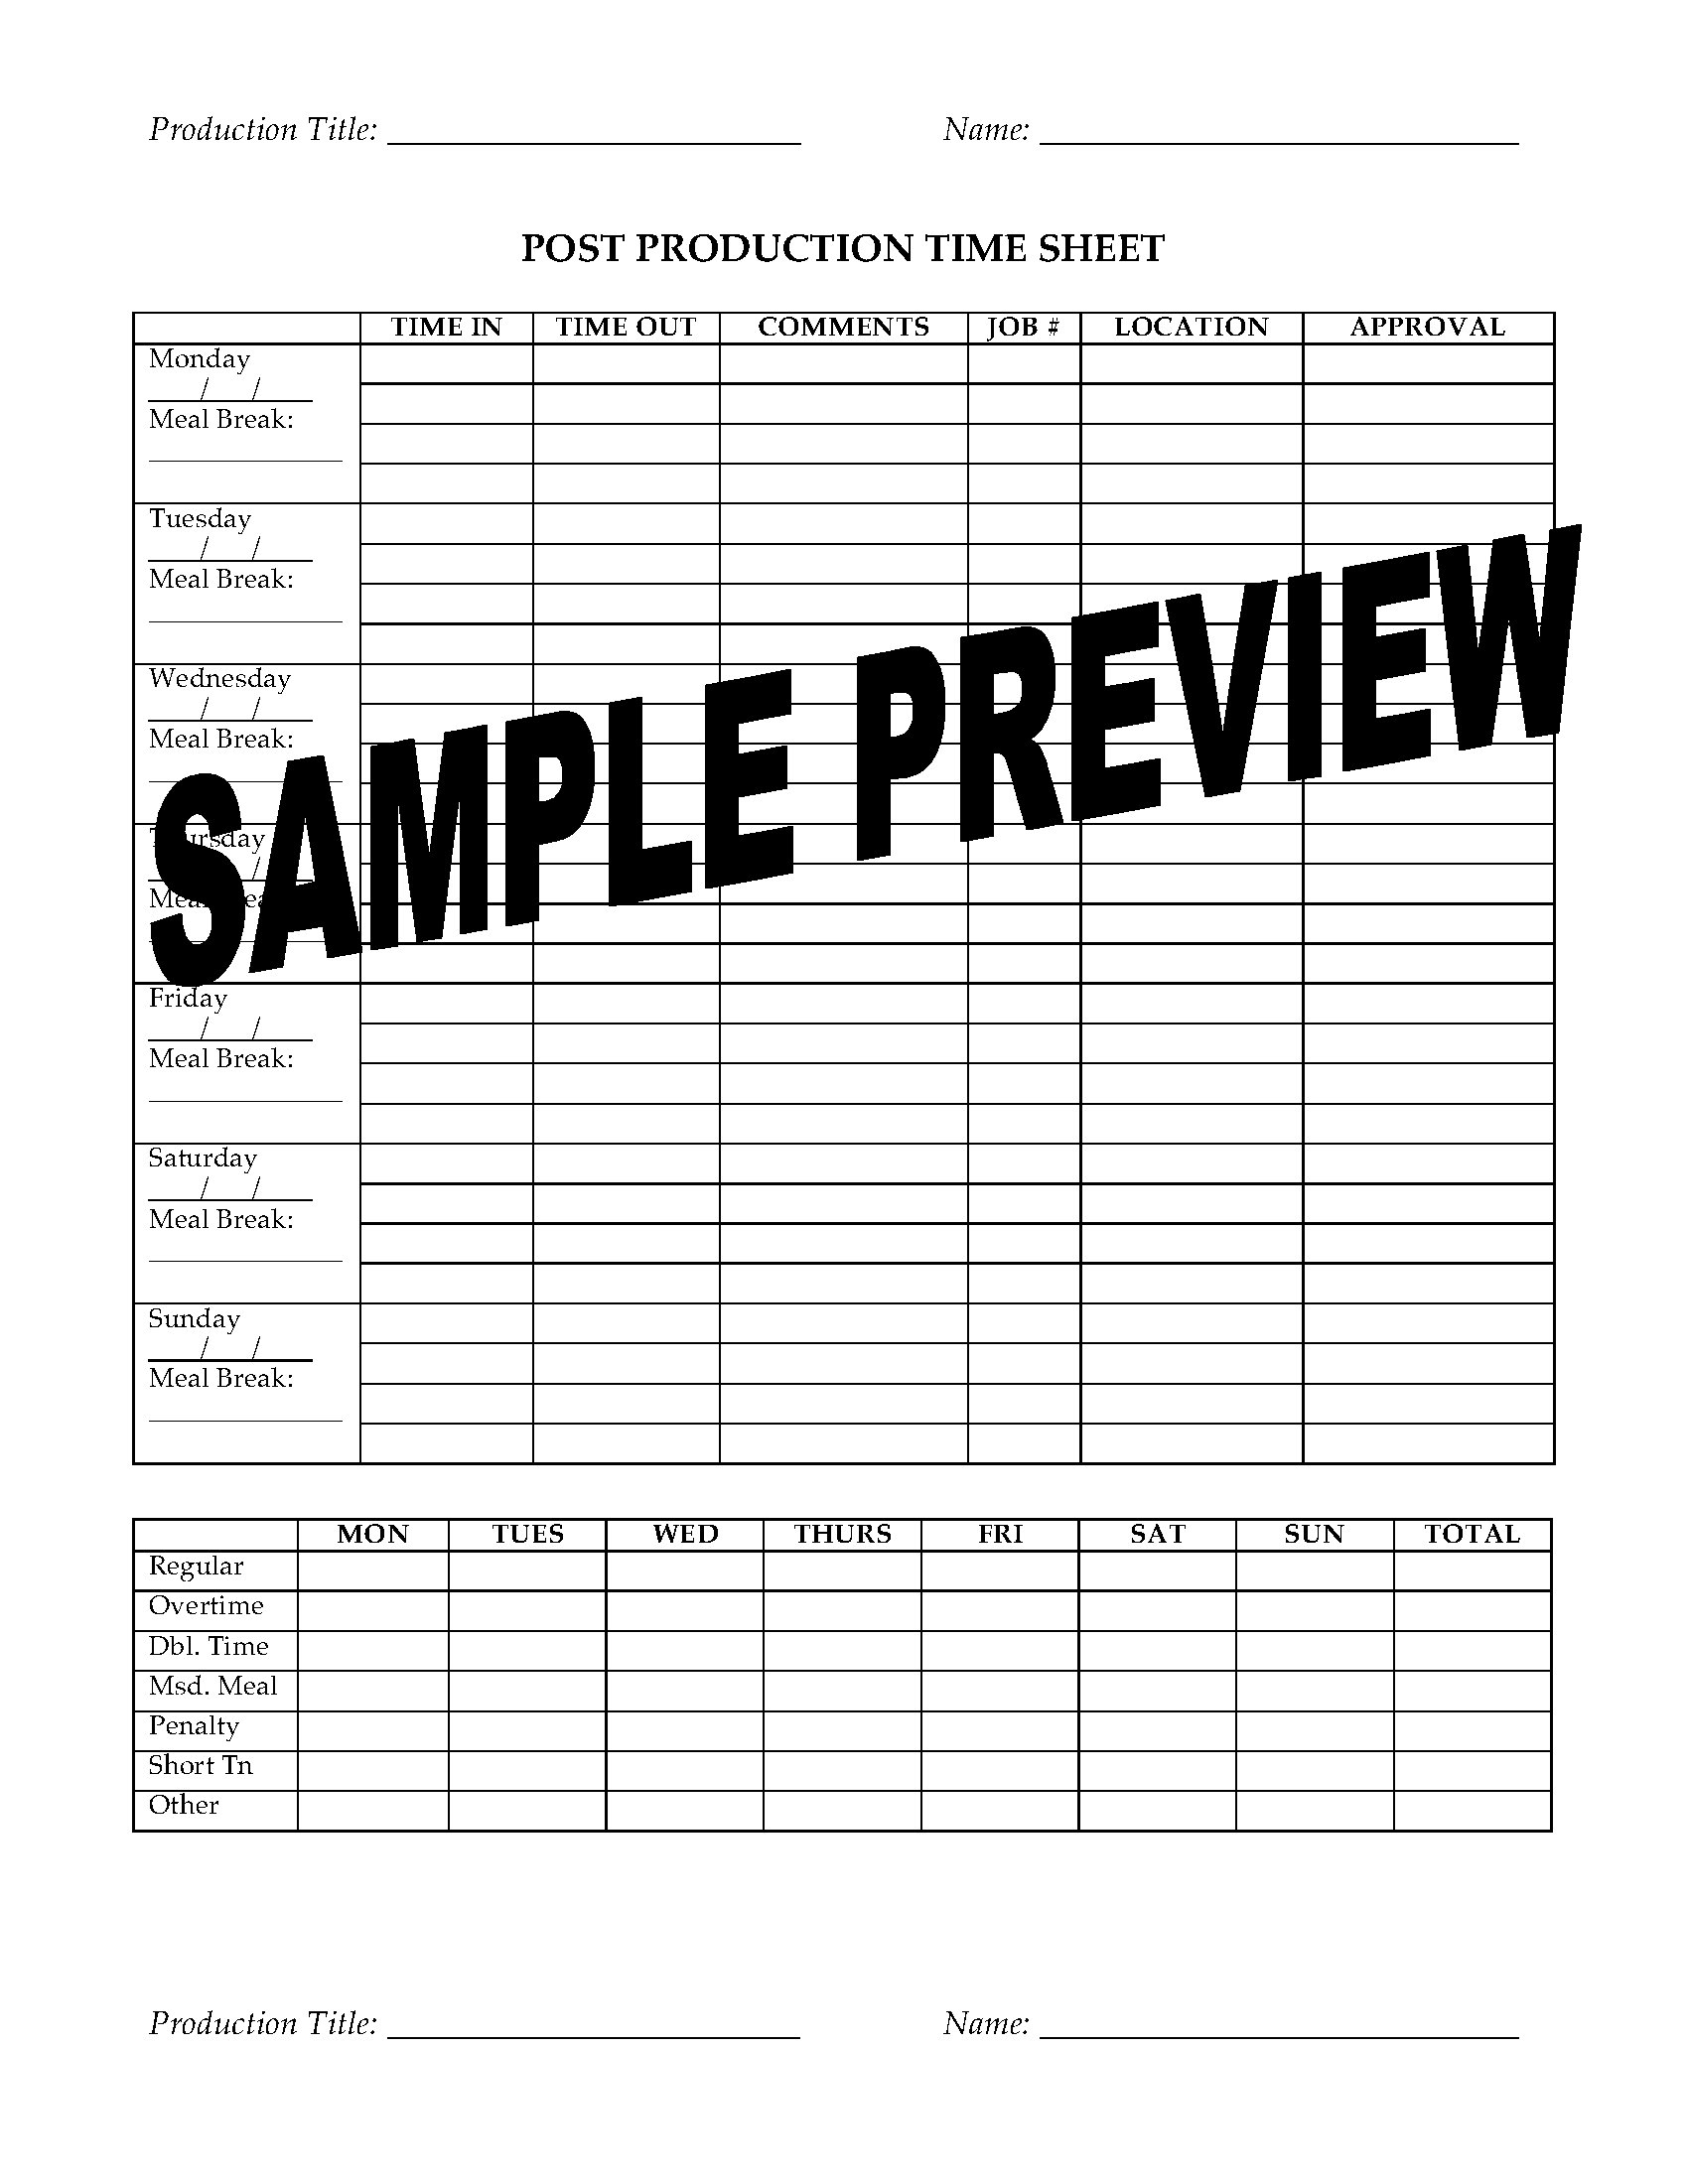 post production time sheet for film shoot legal forms and business templates. Black Bedroom Furniture Sets. Home Design Ideas